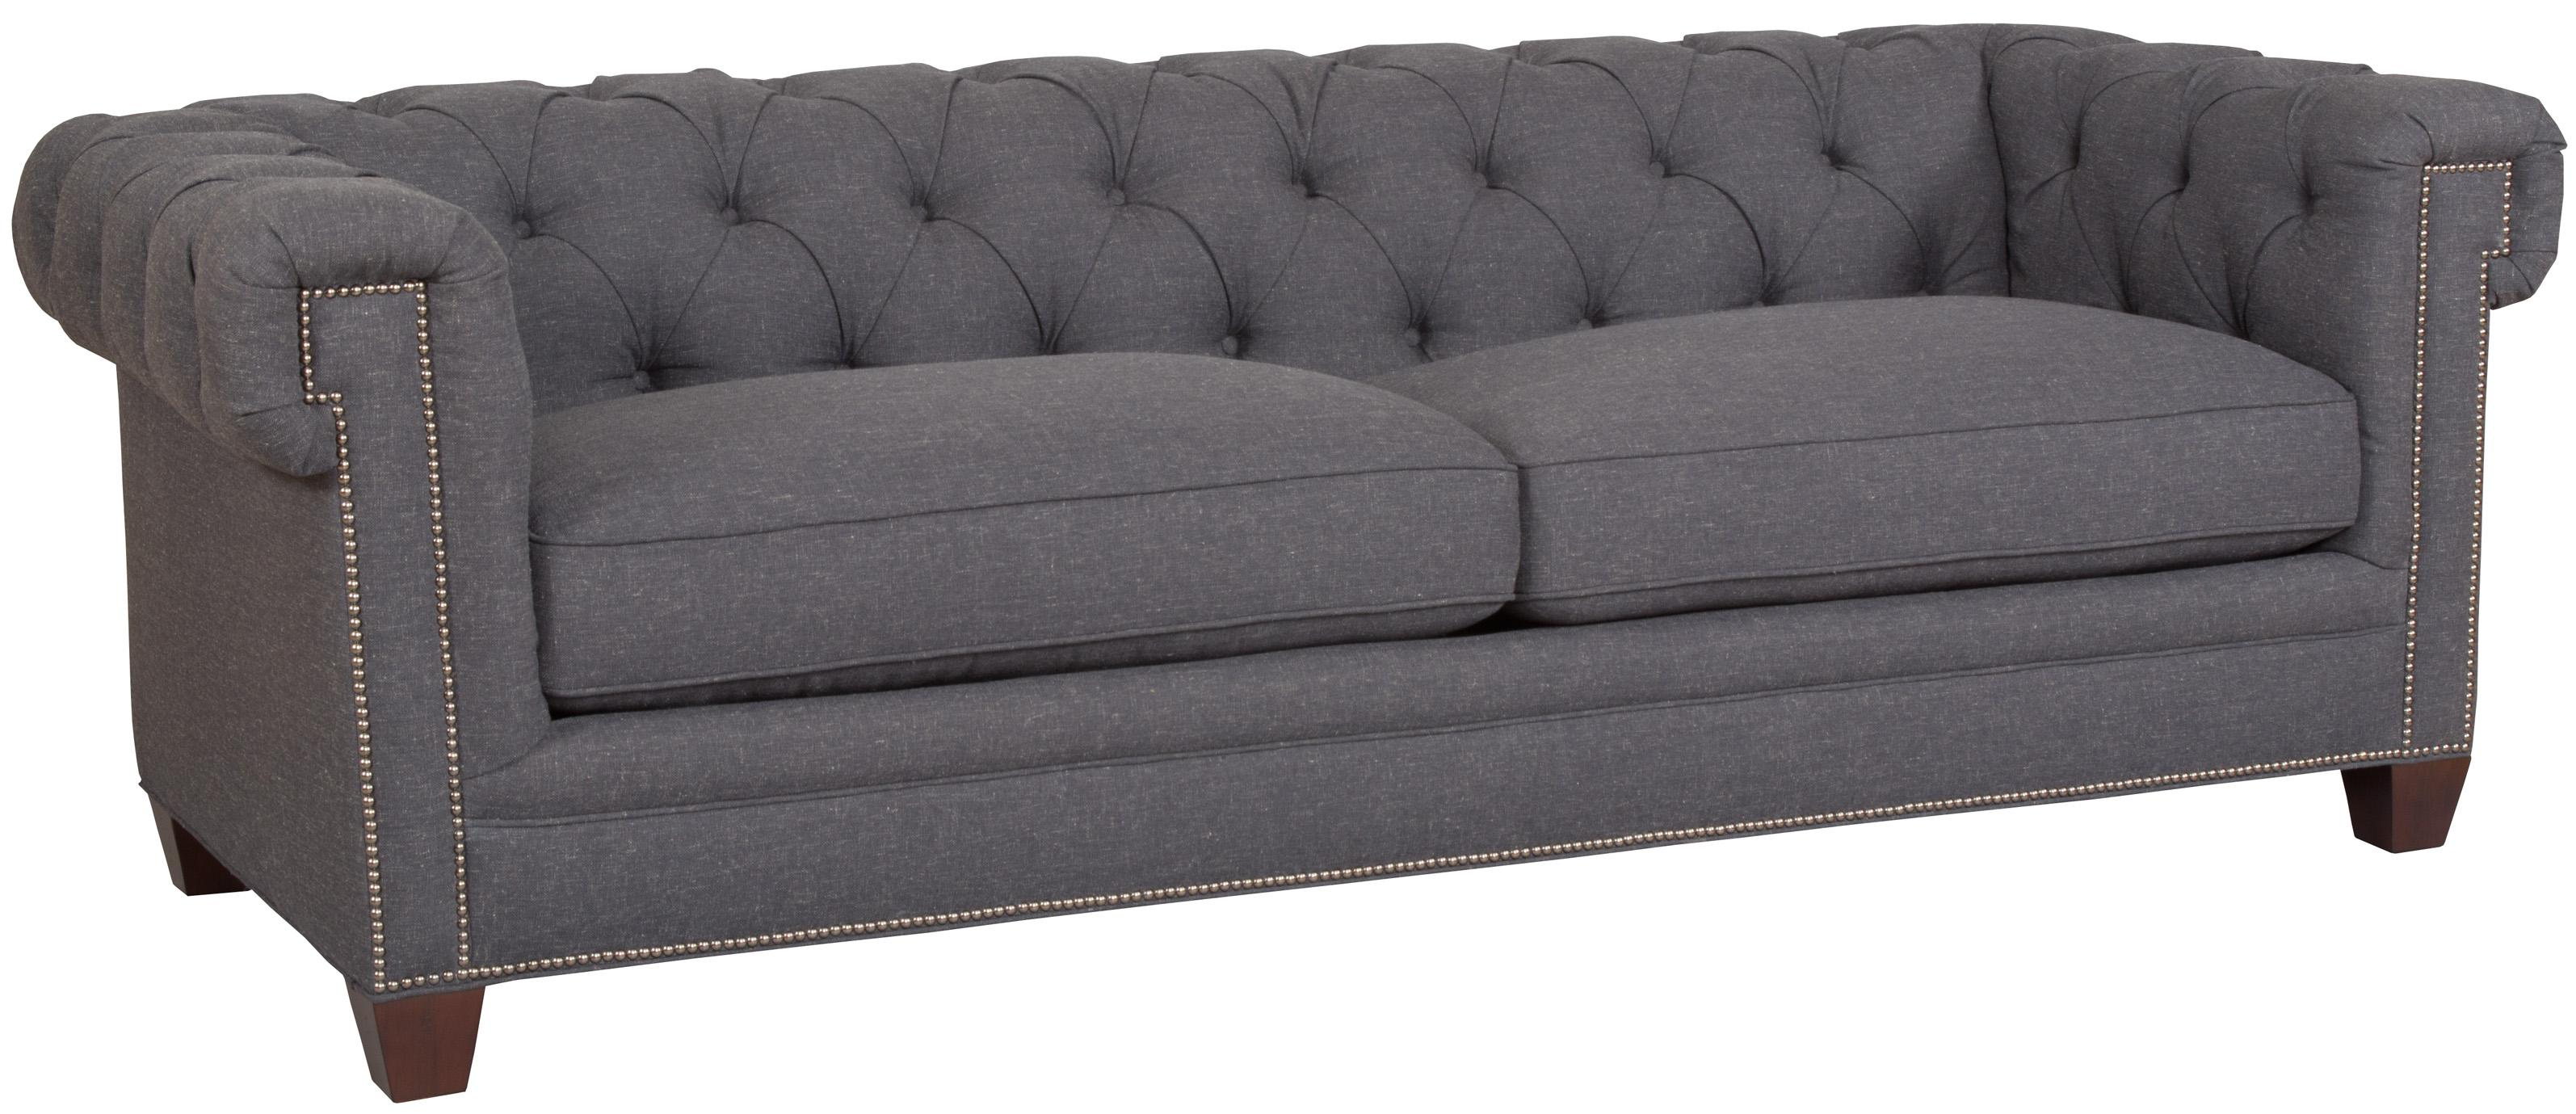 Hooker Furniture SS195 020 Transitional Chesterfield Sofa with